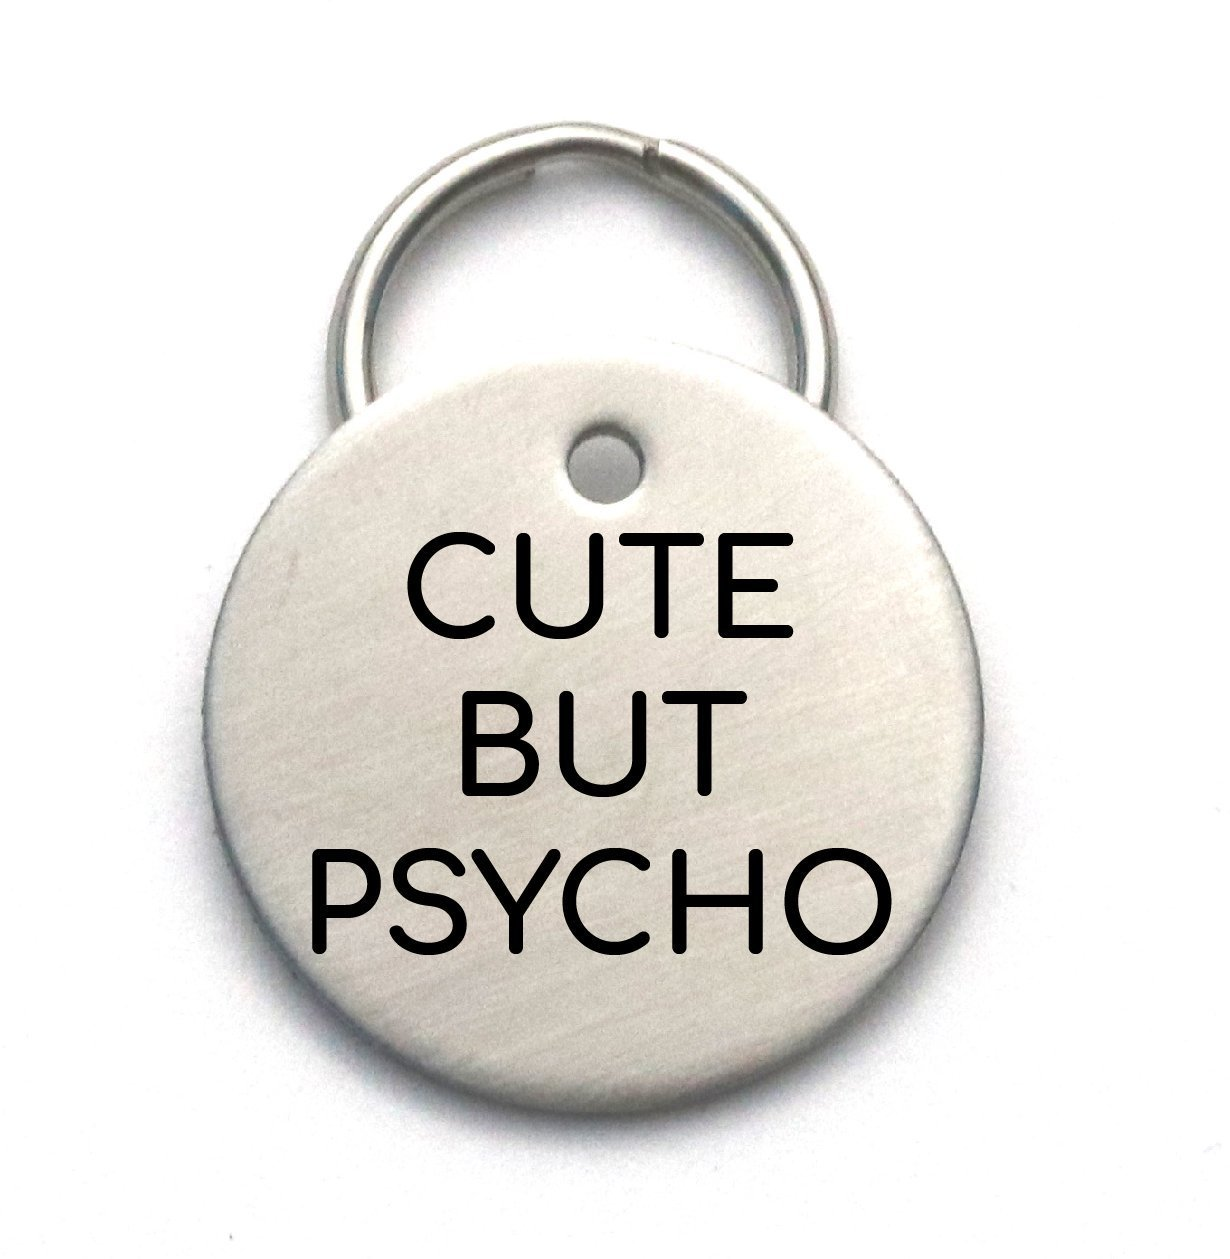 Cute But Psycho - Funny Customized Dog Tag - Pet ID